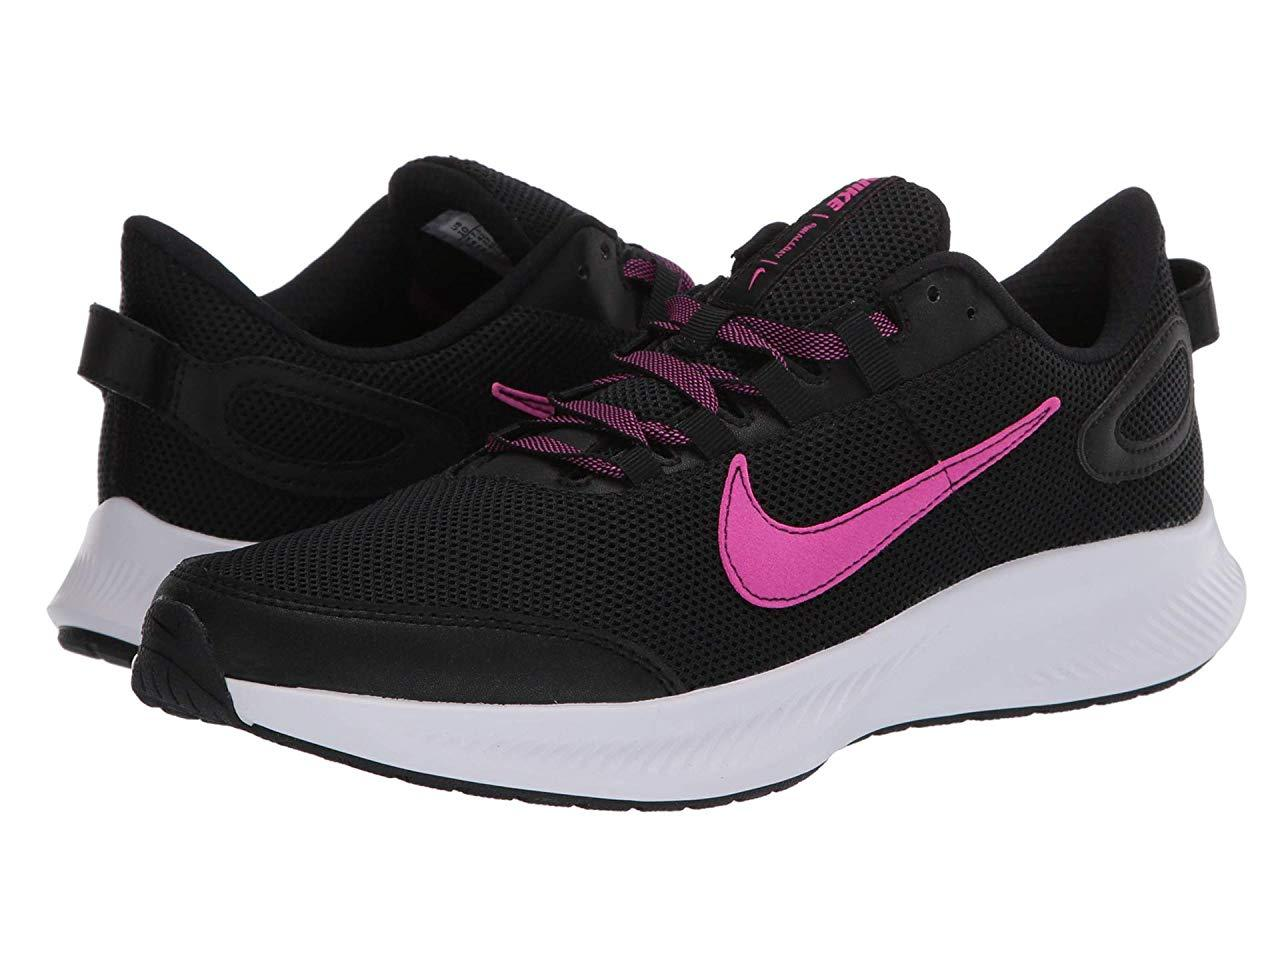 Кроссовки/Кеды Nike Run All Day 2 Black/Pure Platinum/Fire Pink